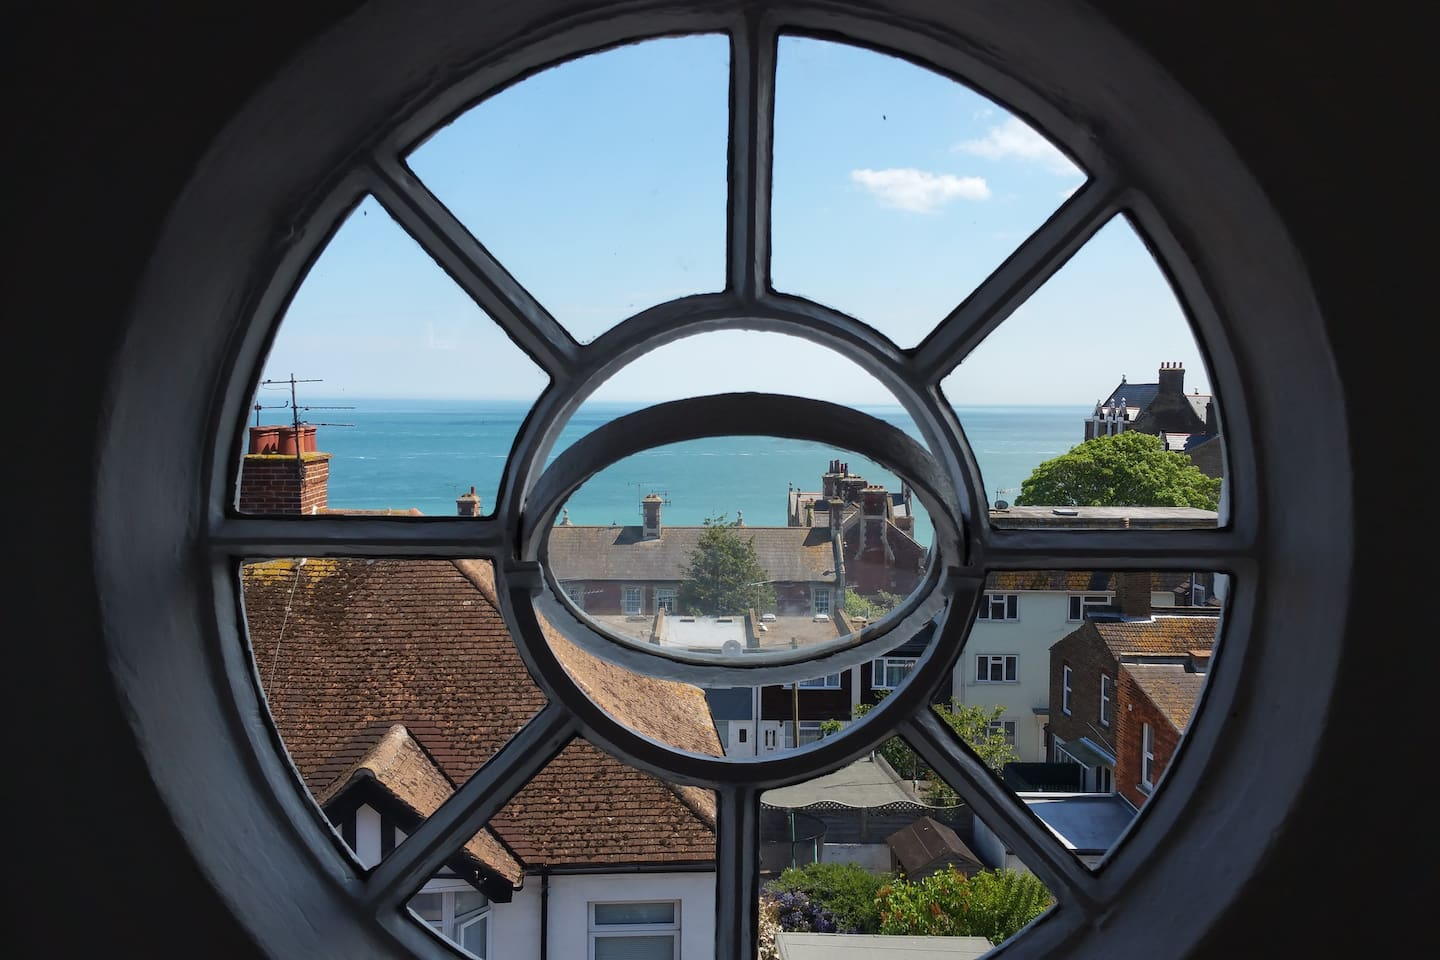 The round window in the attic with a 180 degree view of the sea